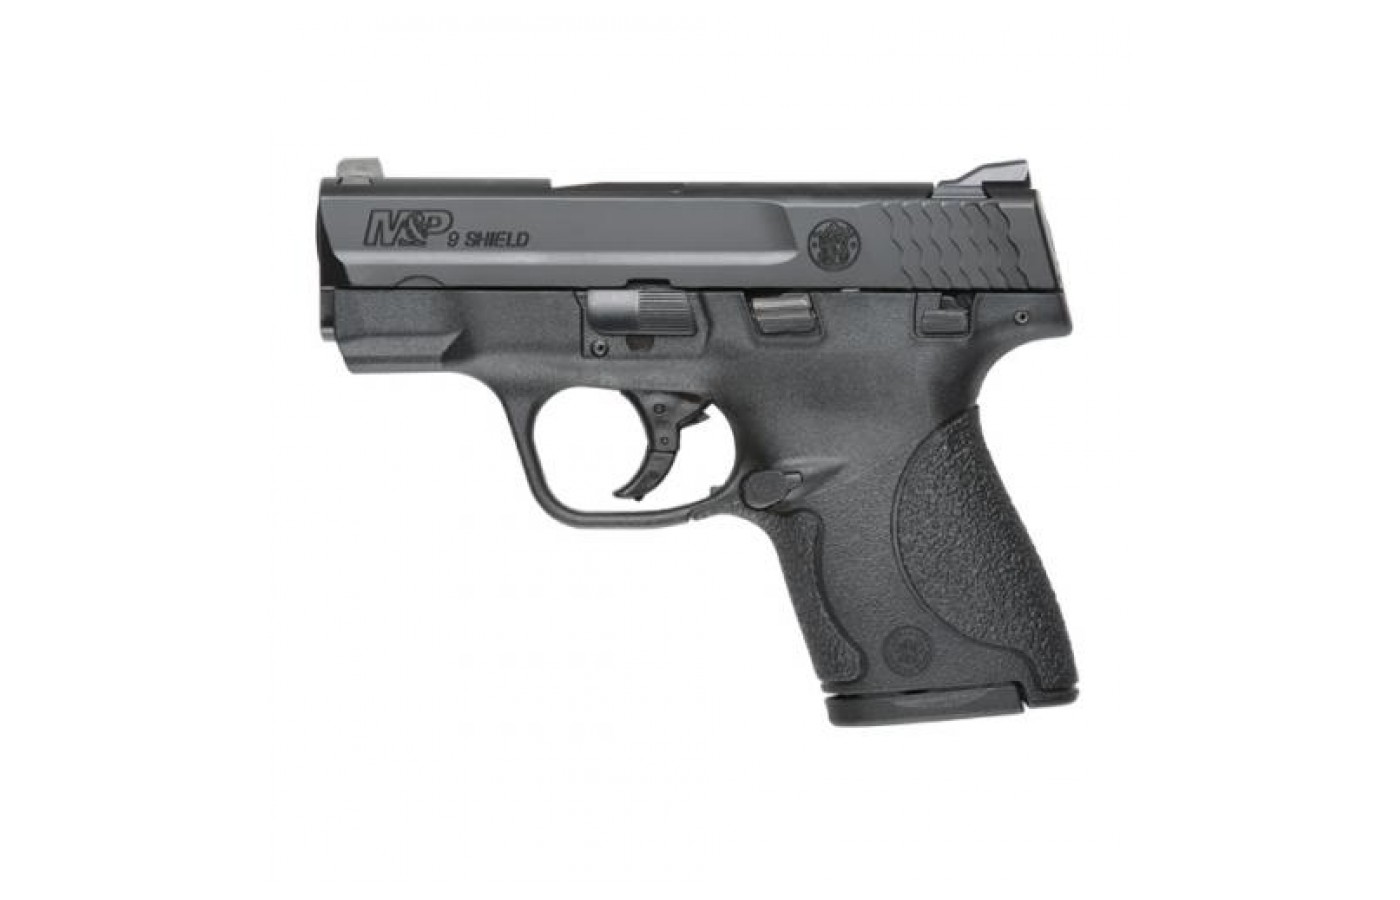 The M & P is a capable defensive pistol.